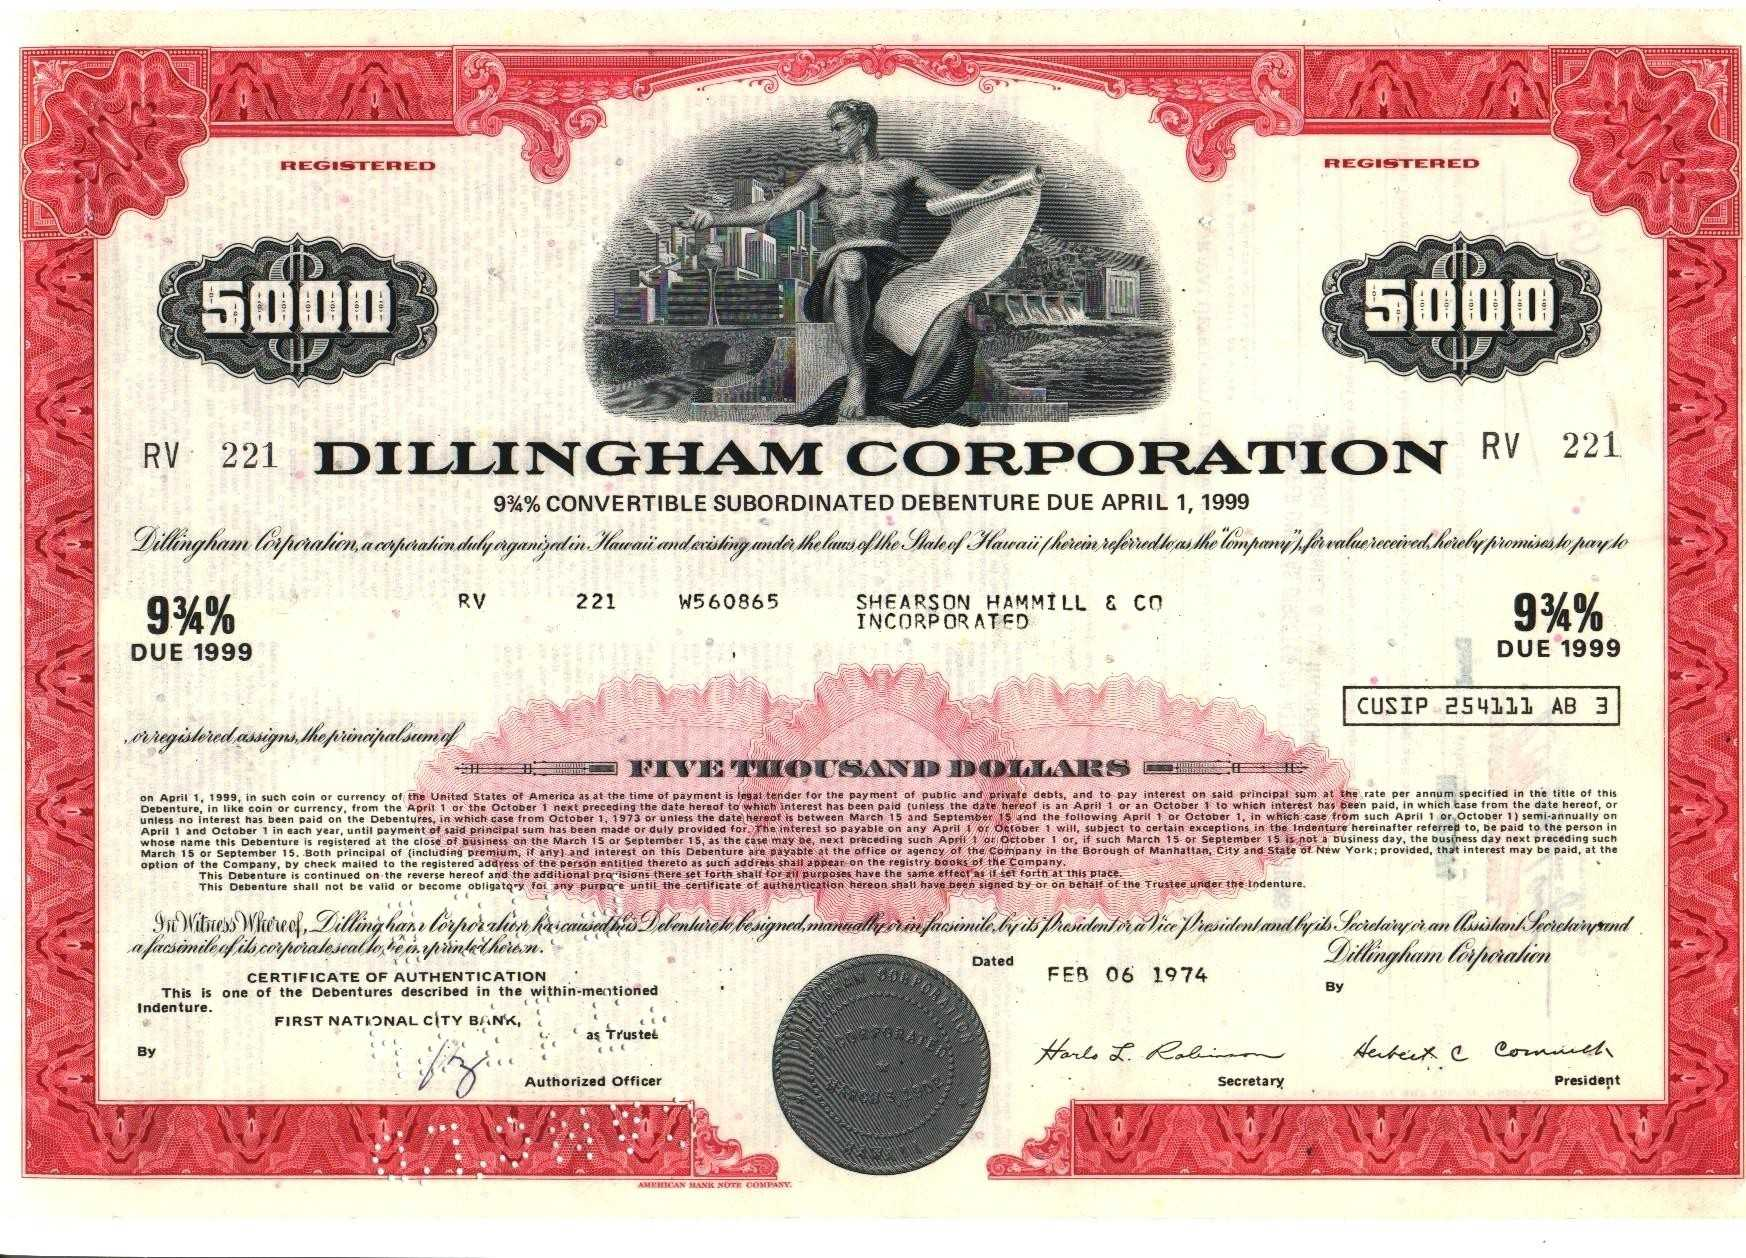 Bond Certificate Template - Carlynstudio With Regard To Corporate Bond Certificate Template